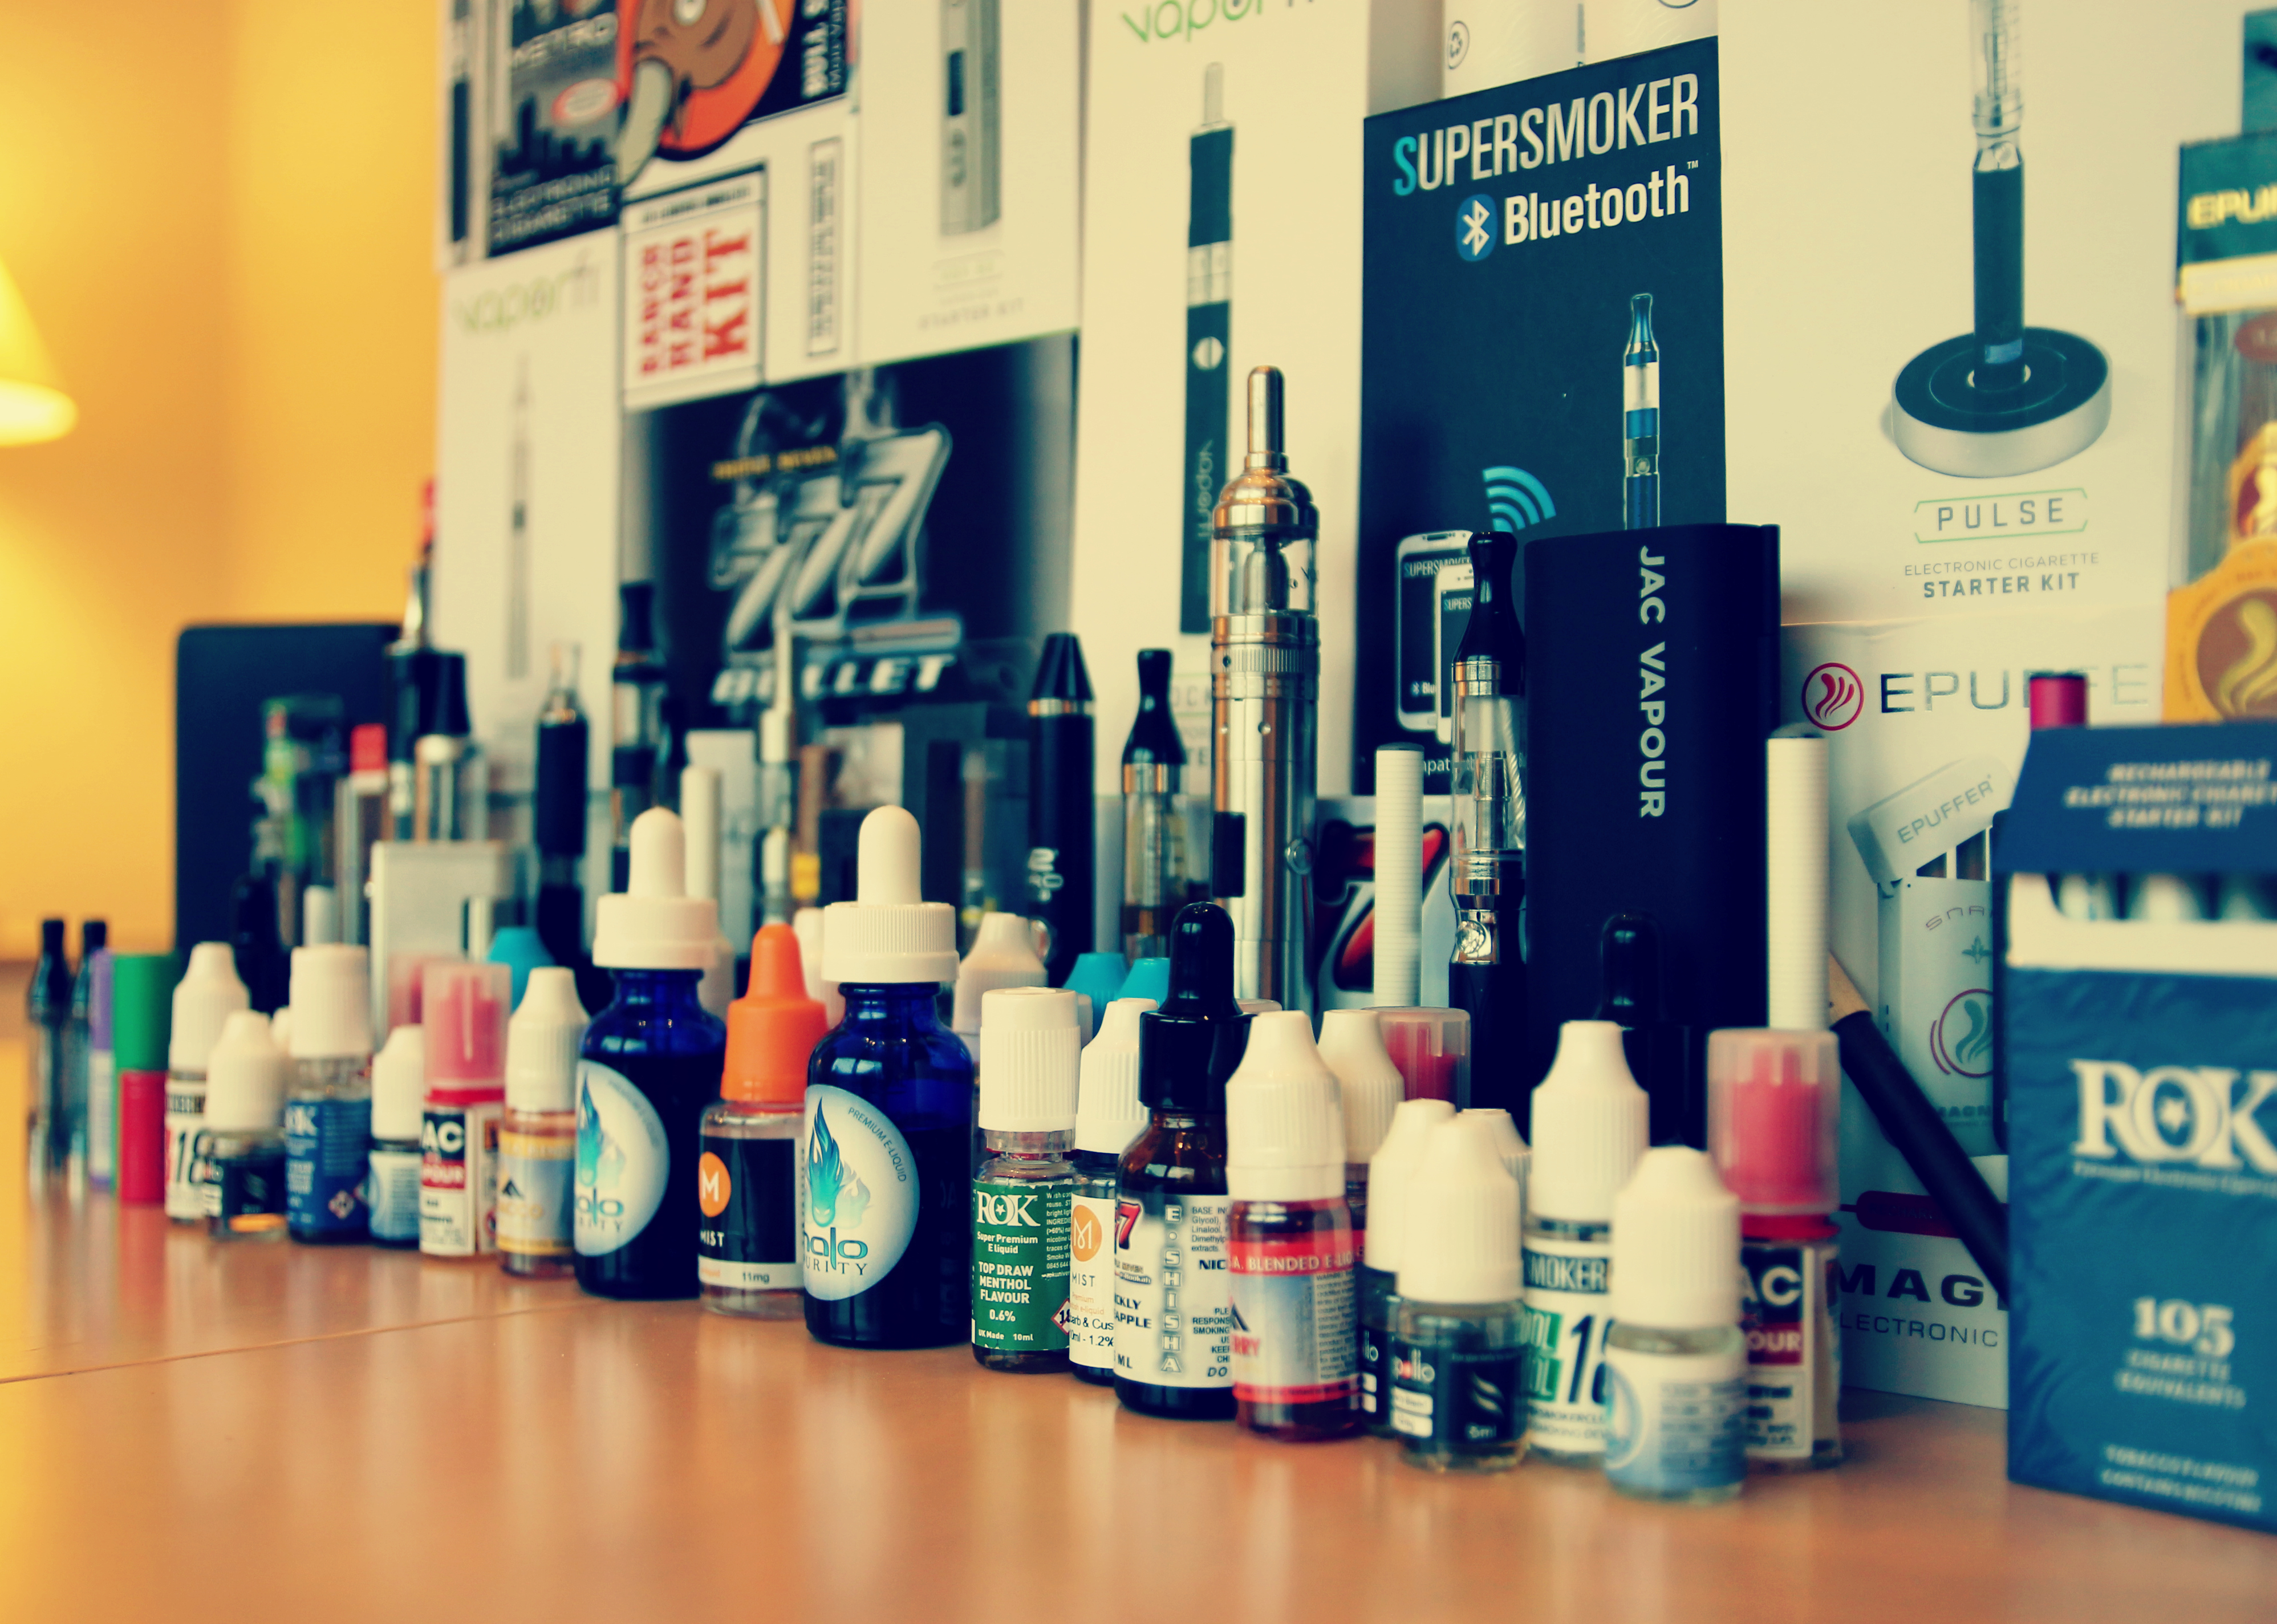 High VG or PG E-juice: Which E-liquid Should You Buy